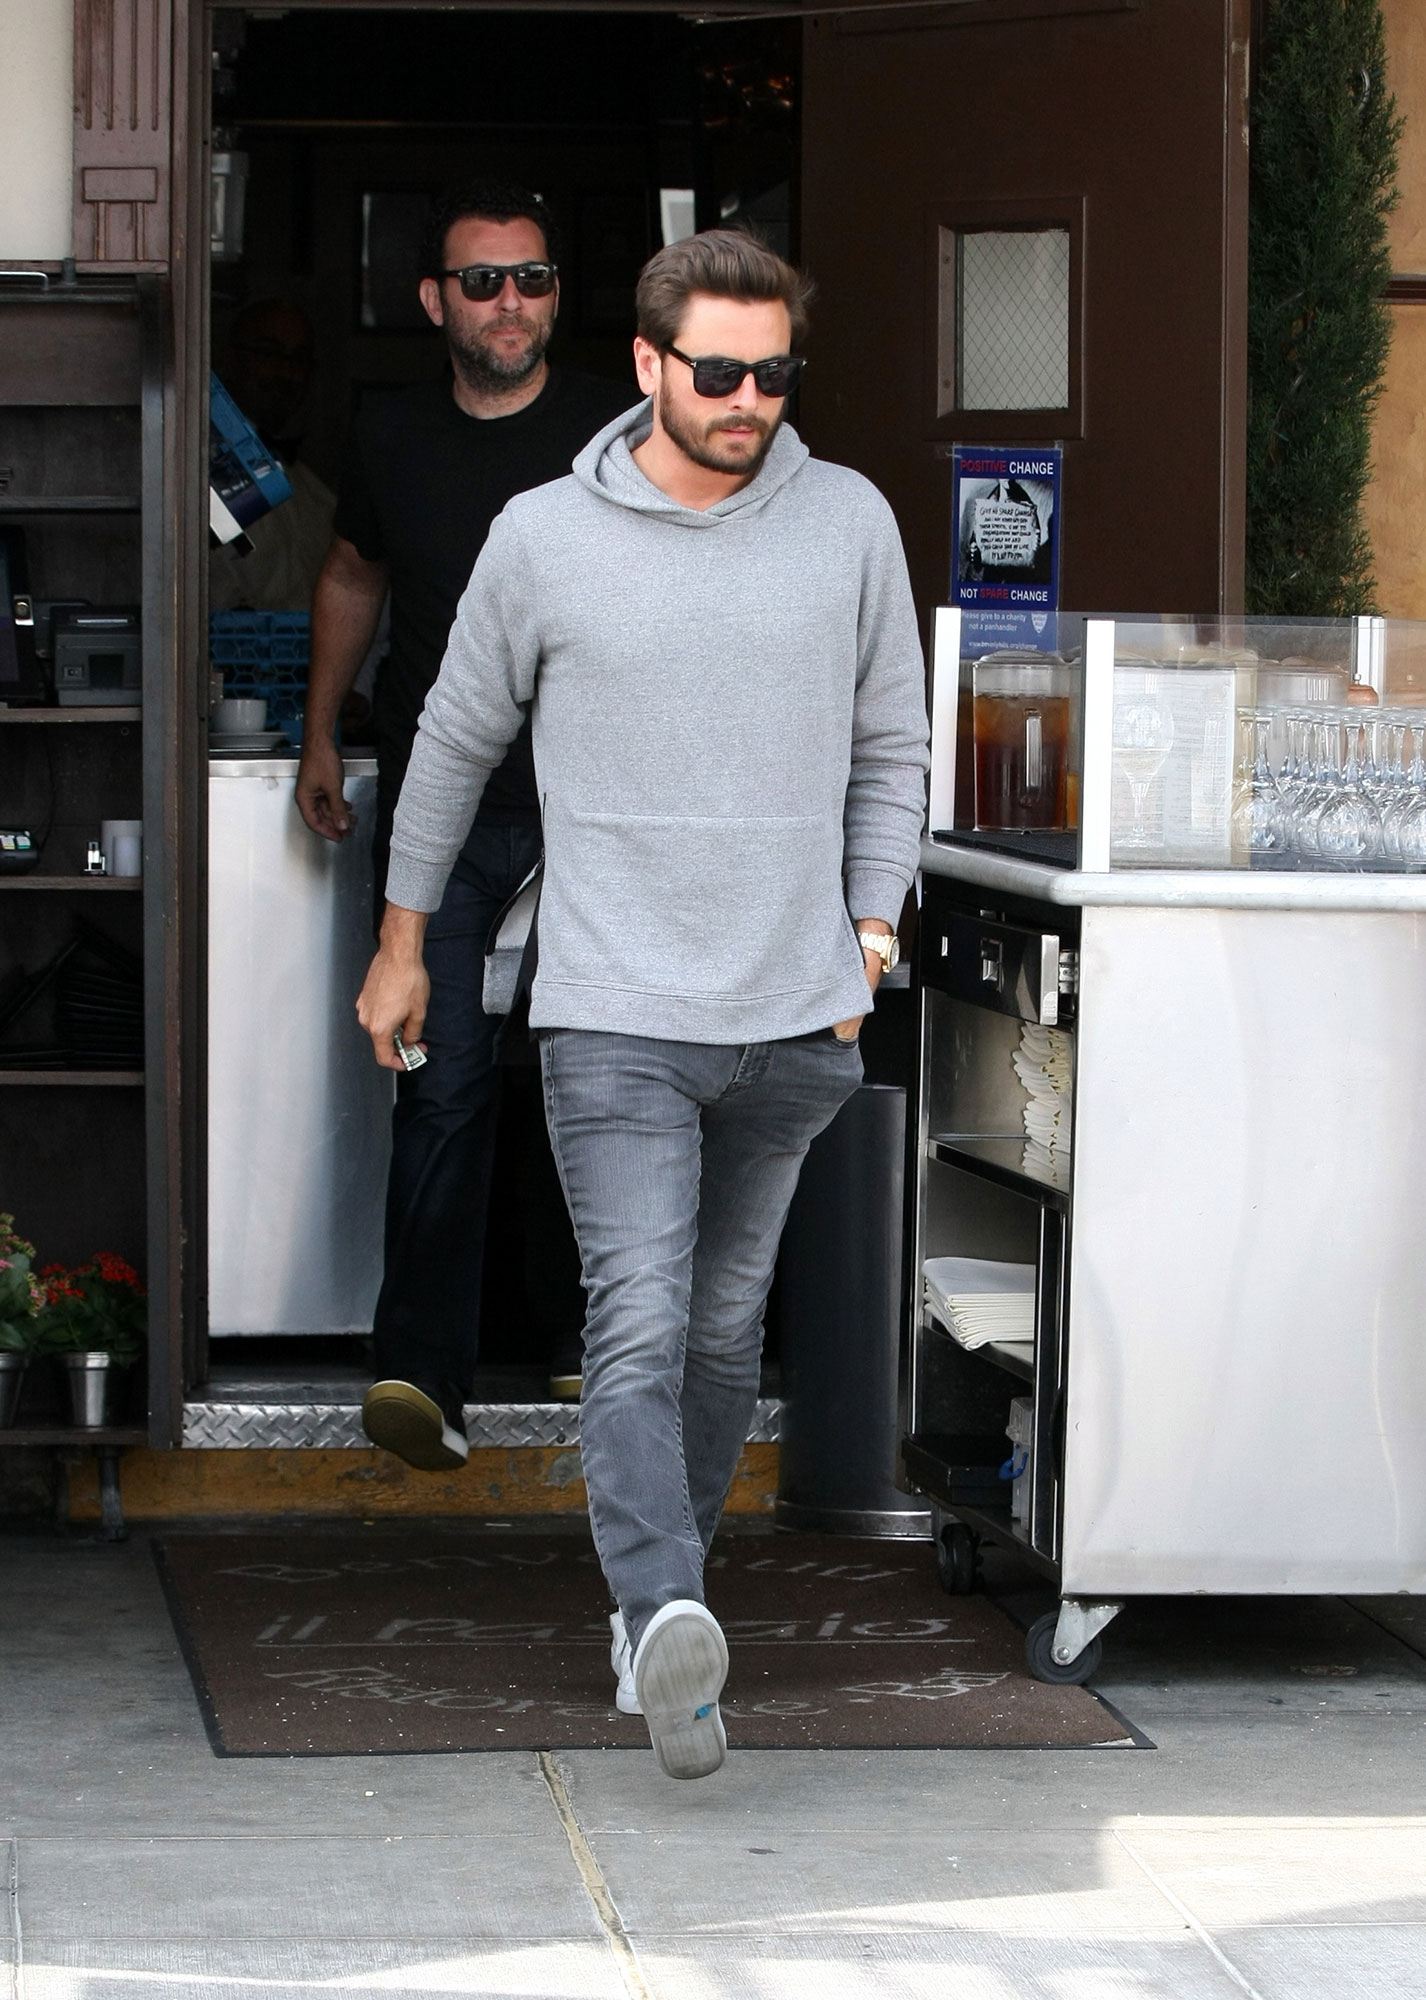 Scott Disick - Scott took control of his alcohol and drug issues in October 2015 by entering rehab as Kourtney looked after their shared children.